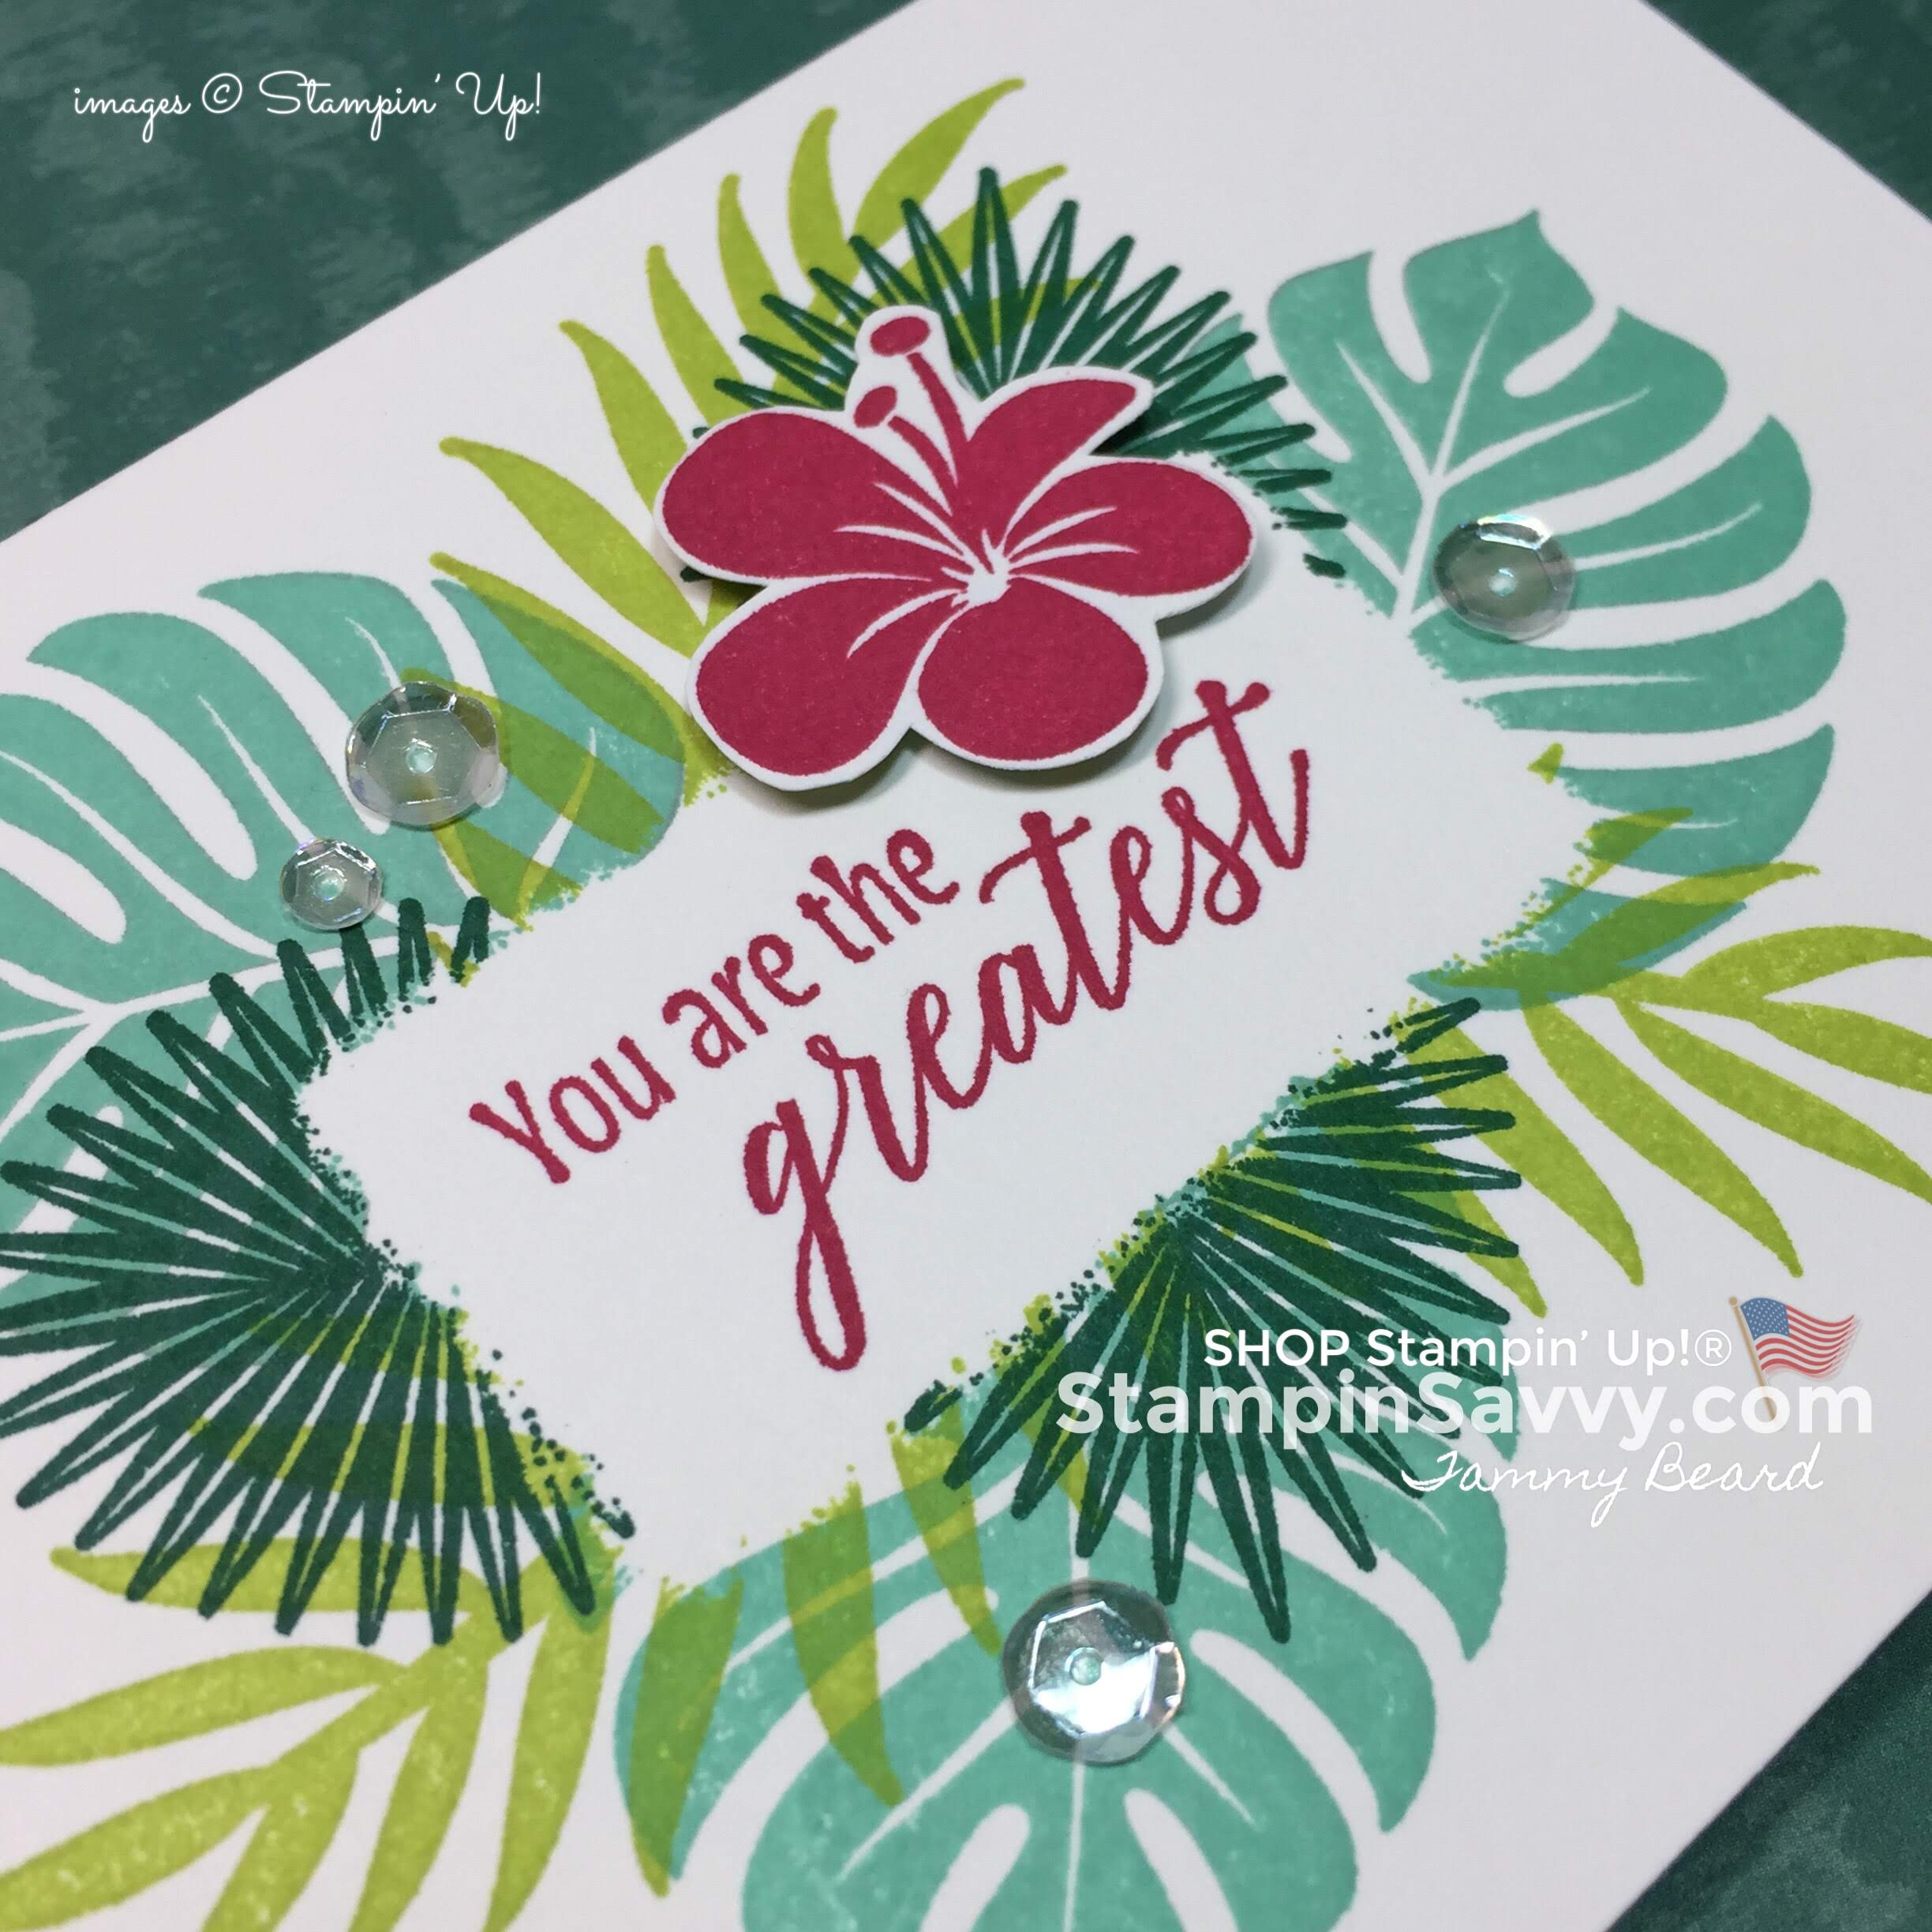 tropical chic stampin up cards, card ideas, masking techniques, stampin up, stampin savvy, stapinup, closeup, tammy beard